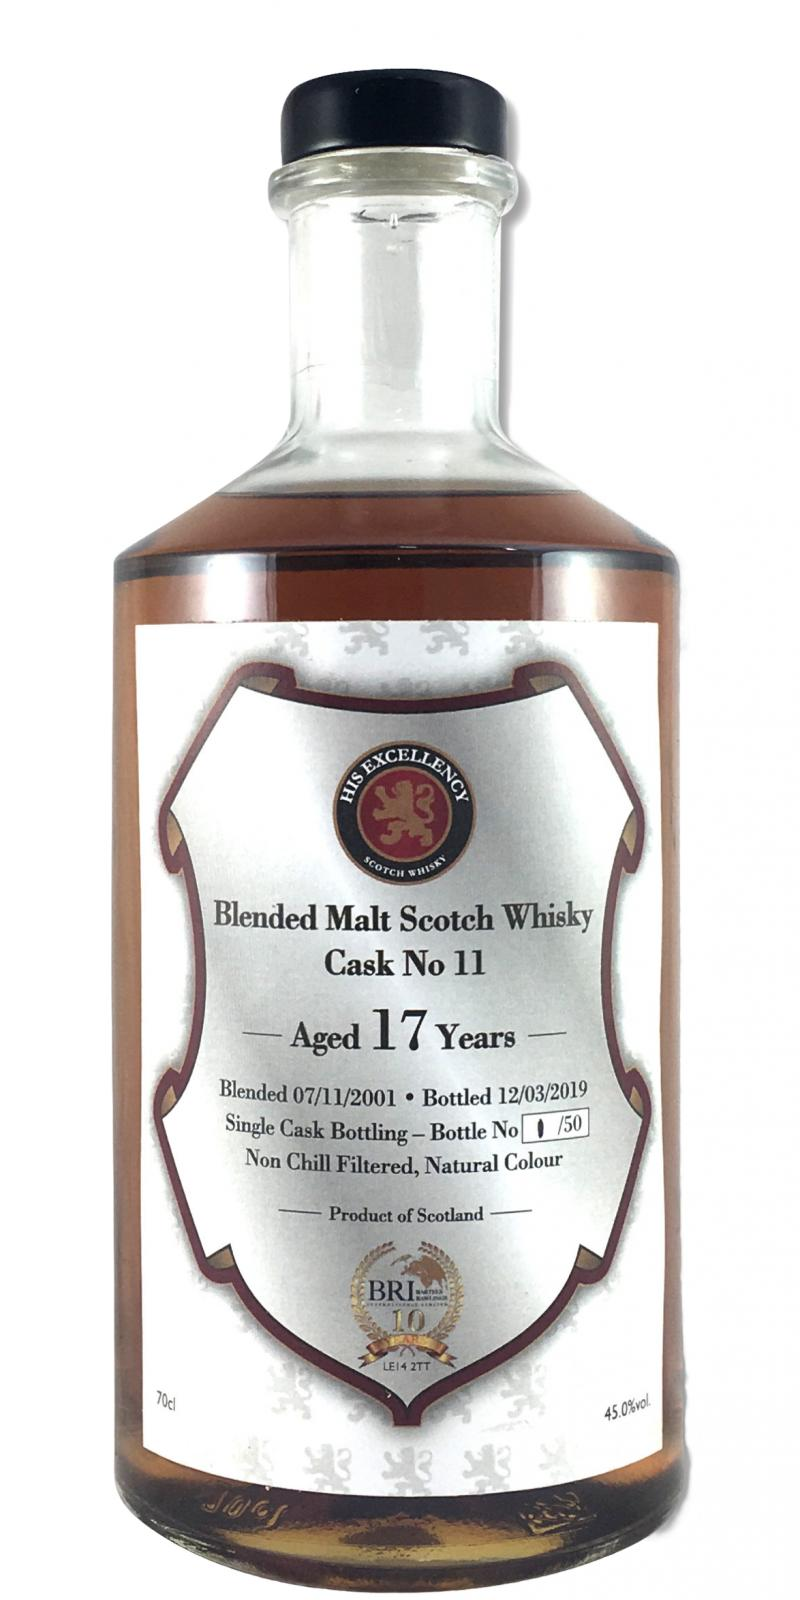 Blended Malt Scotch Whisky 17-year-old